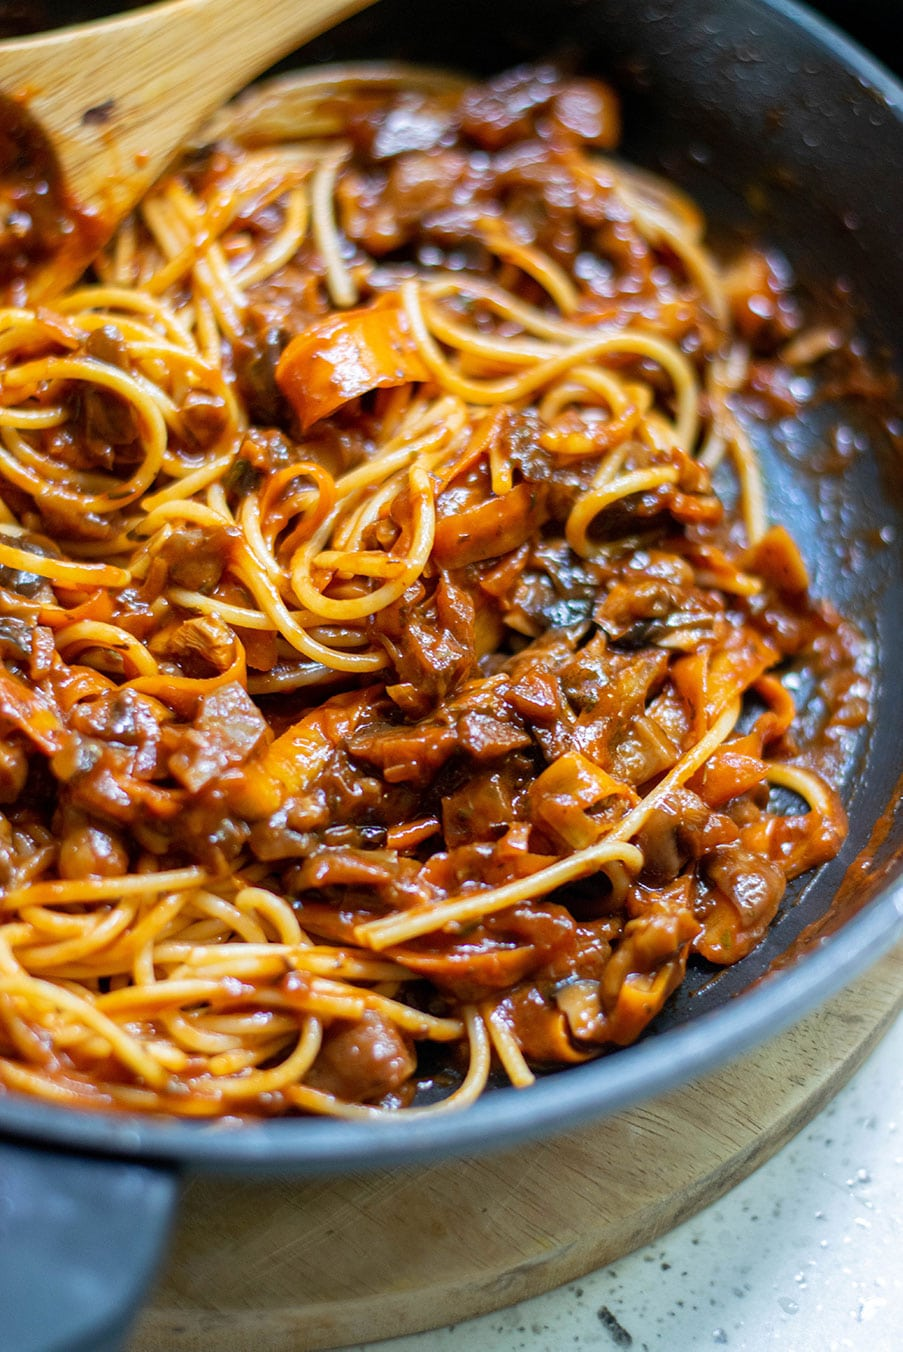 up close shot of spaghetti and mushroom bolognese sauce with a wooden spoon inside a black skillet.